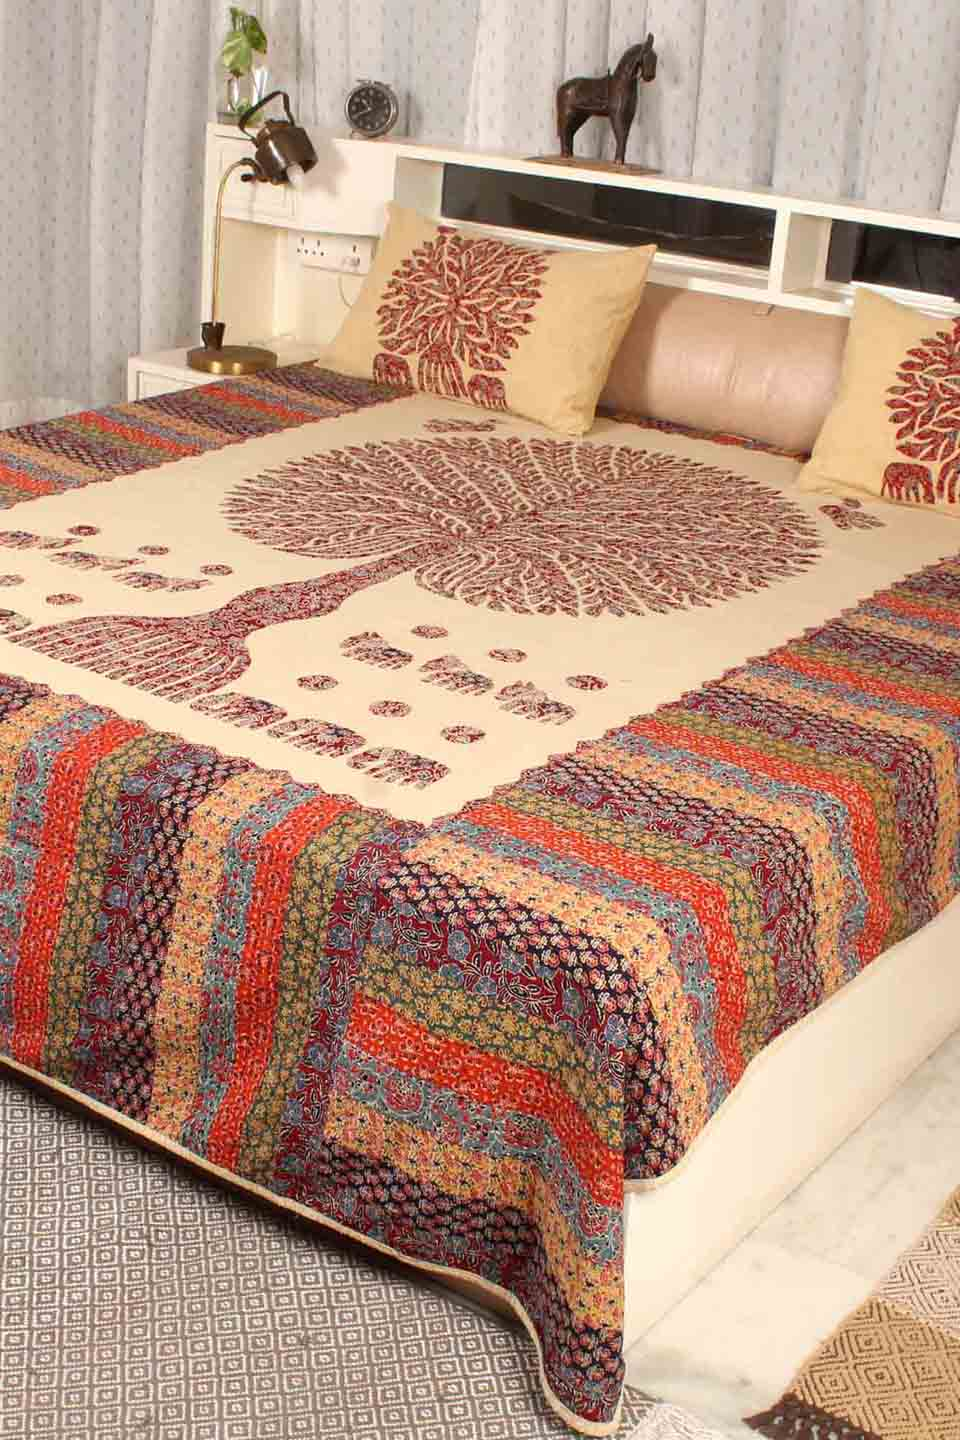 Tree of Life Bedcover, Maroon Color with Beige Base